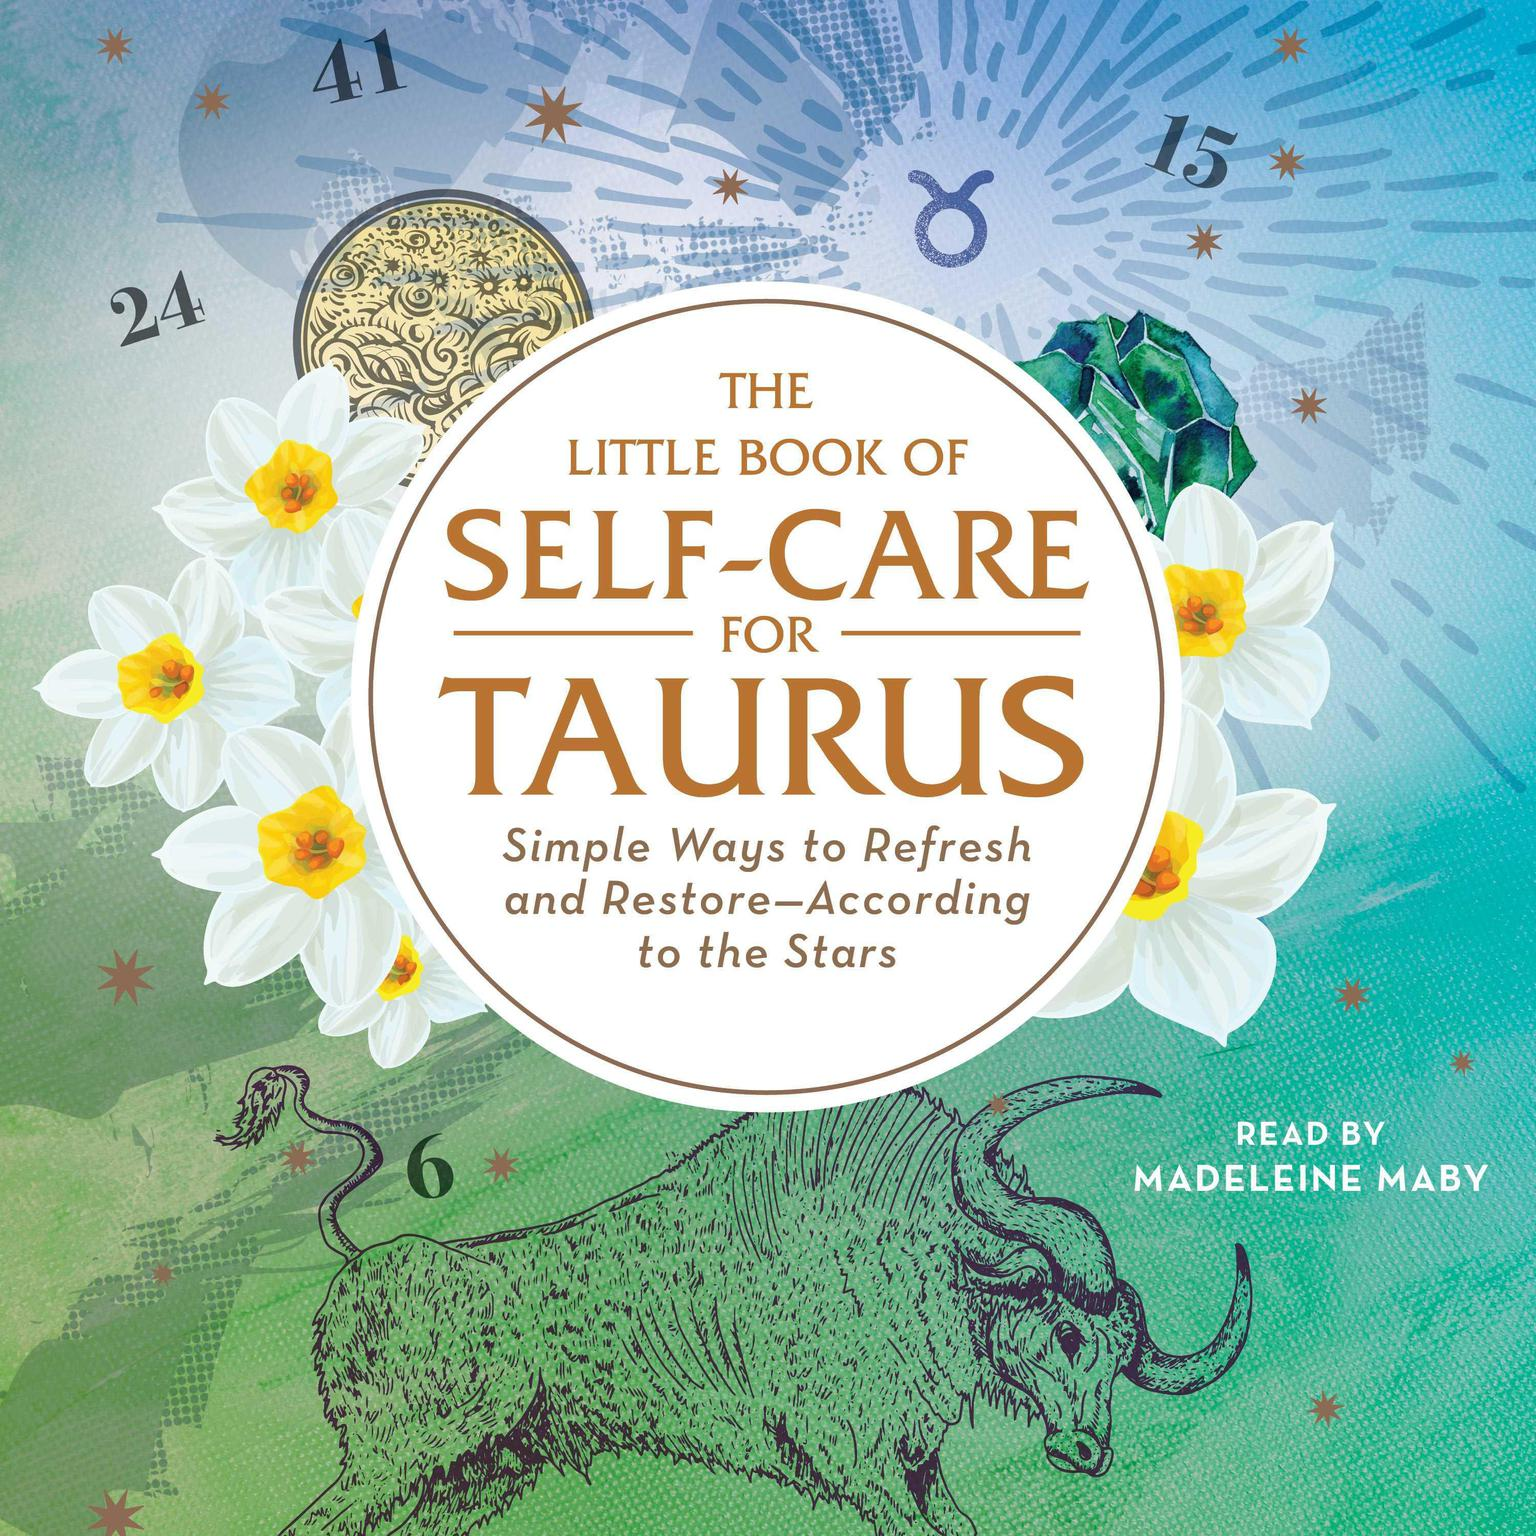 The Little Book of Self-Care for Taurus: Simple Ways to Refresh and  Restore—According to the Stars Audiobook